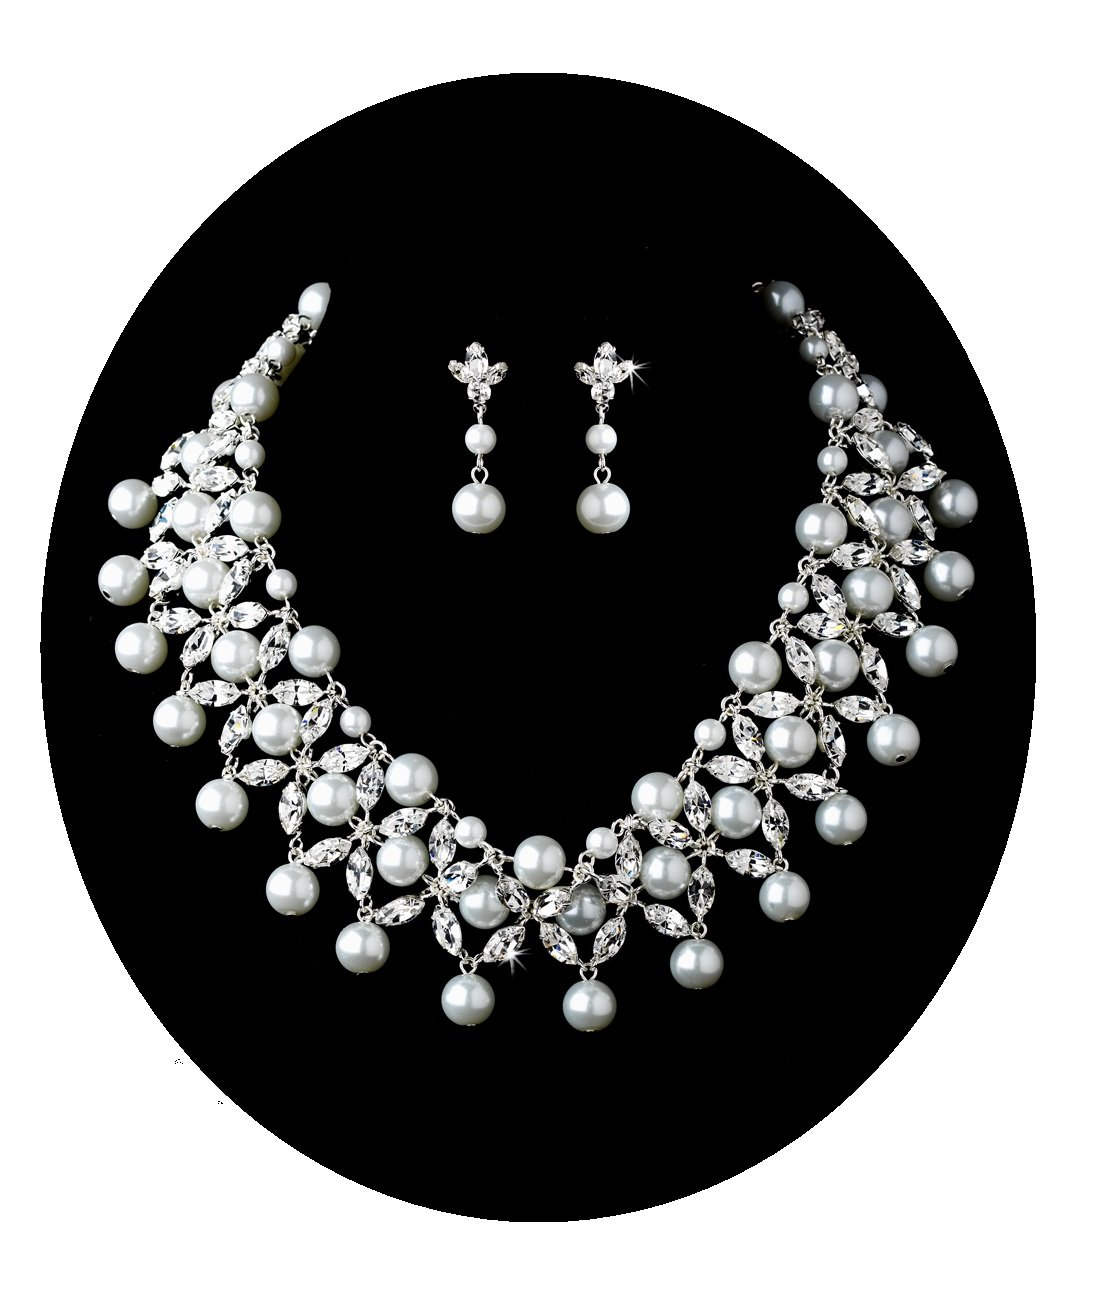 White Pearl Collar Necklace Set Silver Statement Fashion Jewelry (#8)